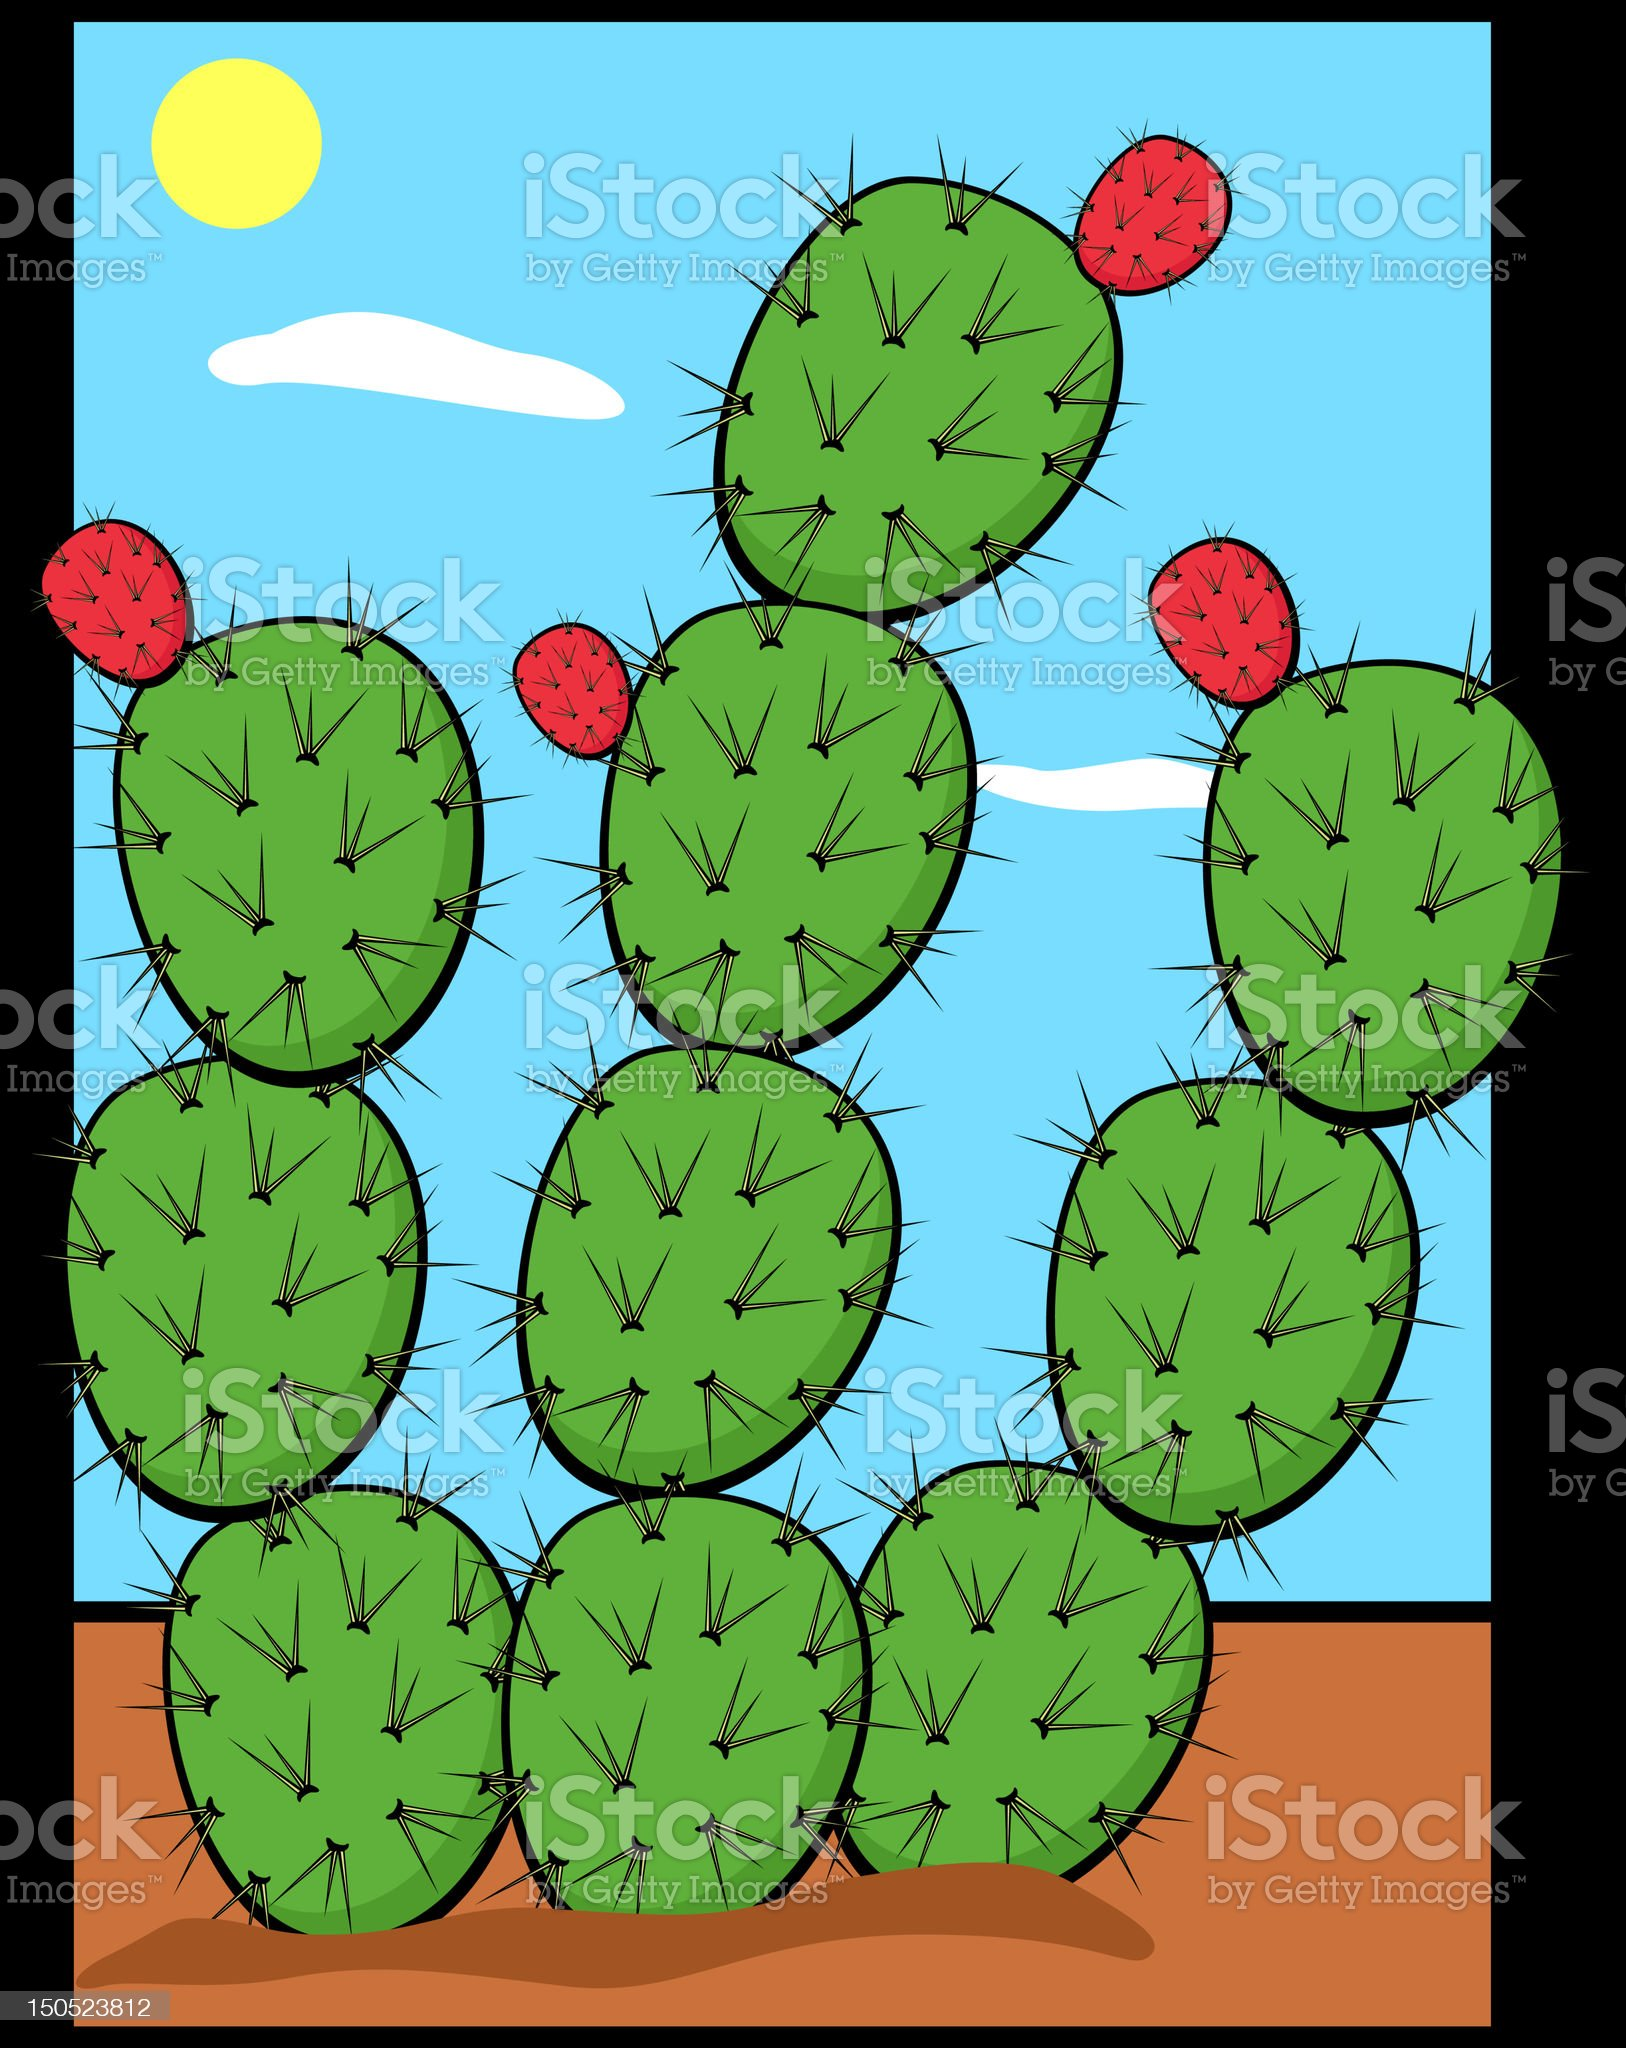 prickly pear or nopal plant royalty-free stock vector art